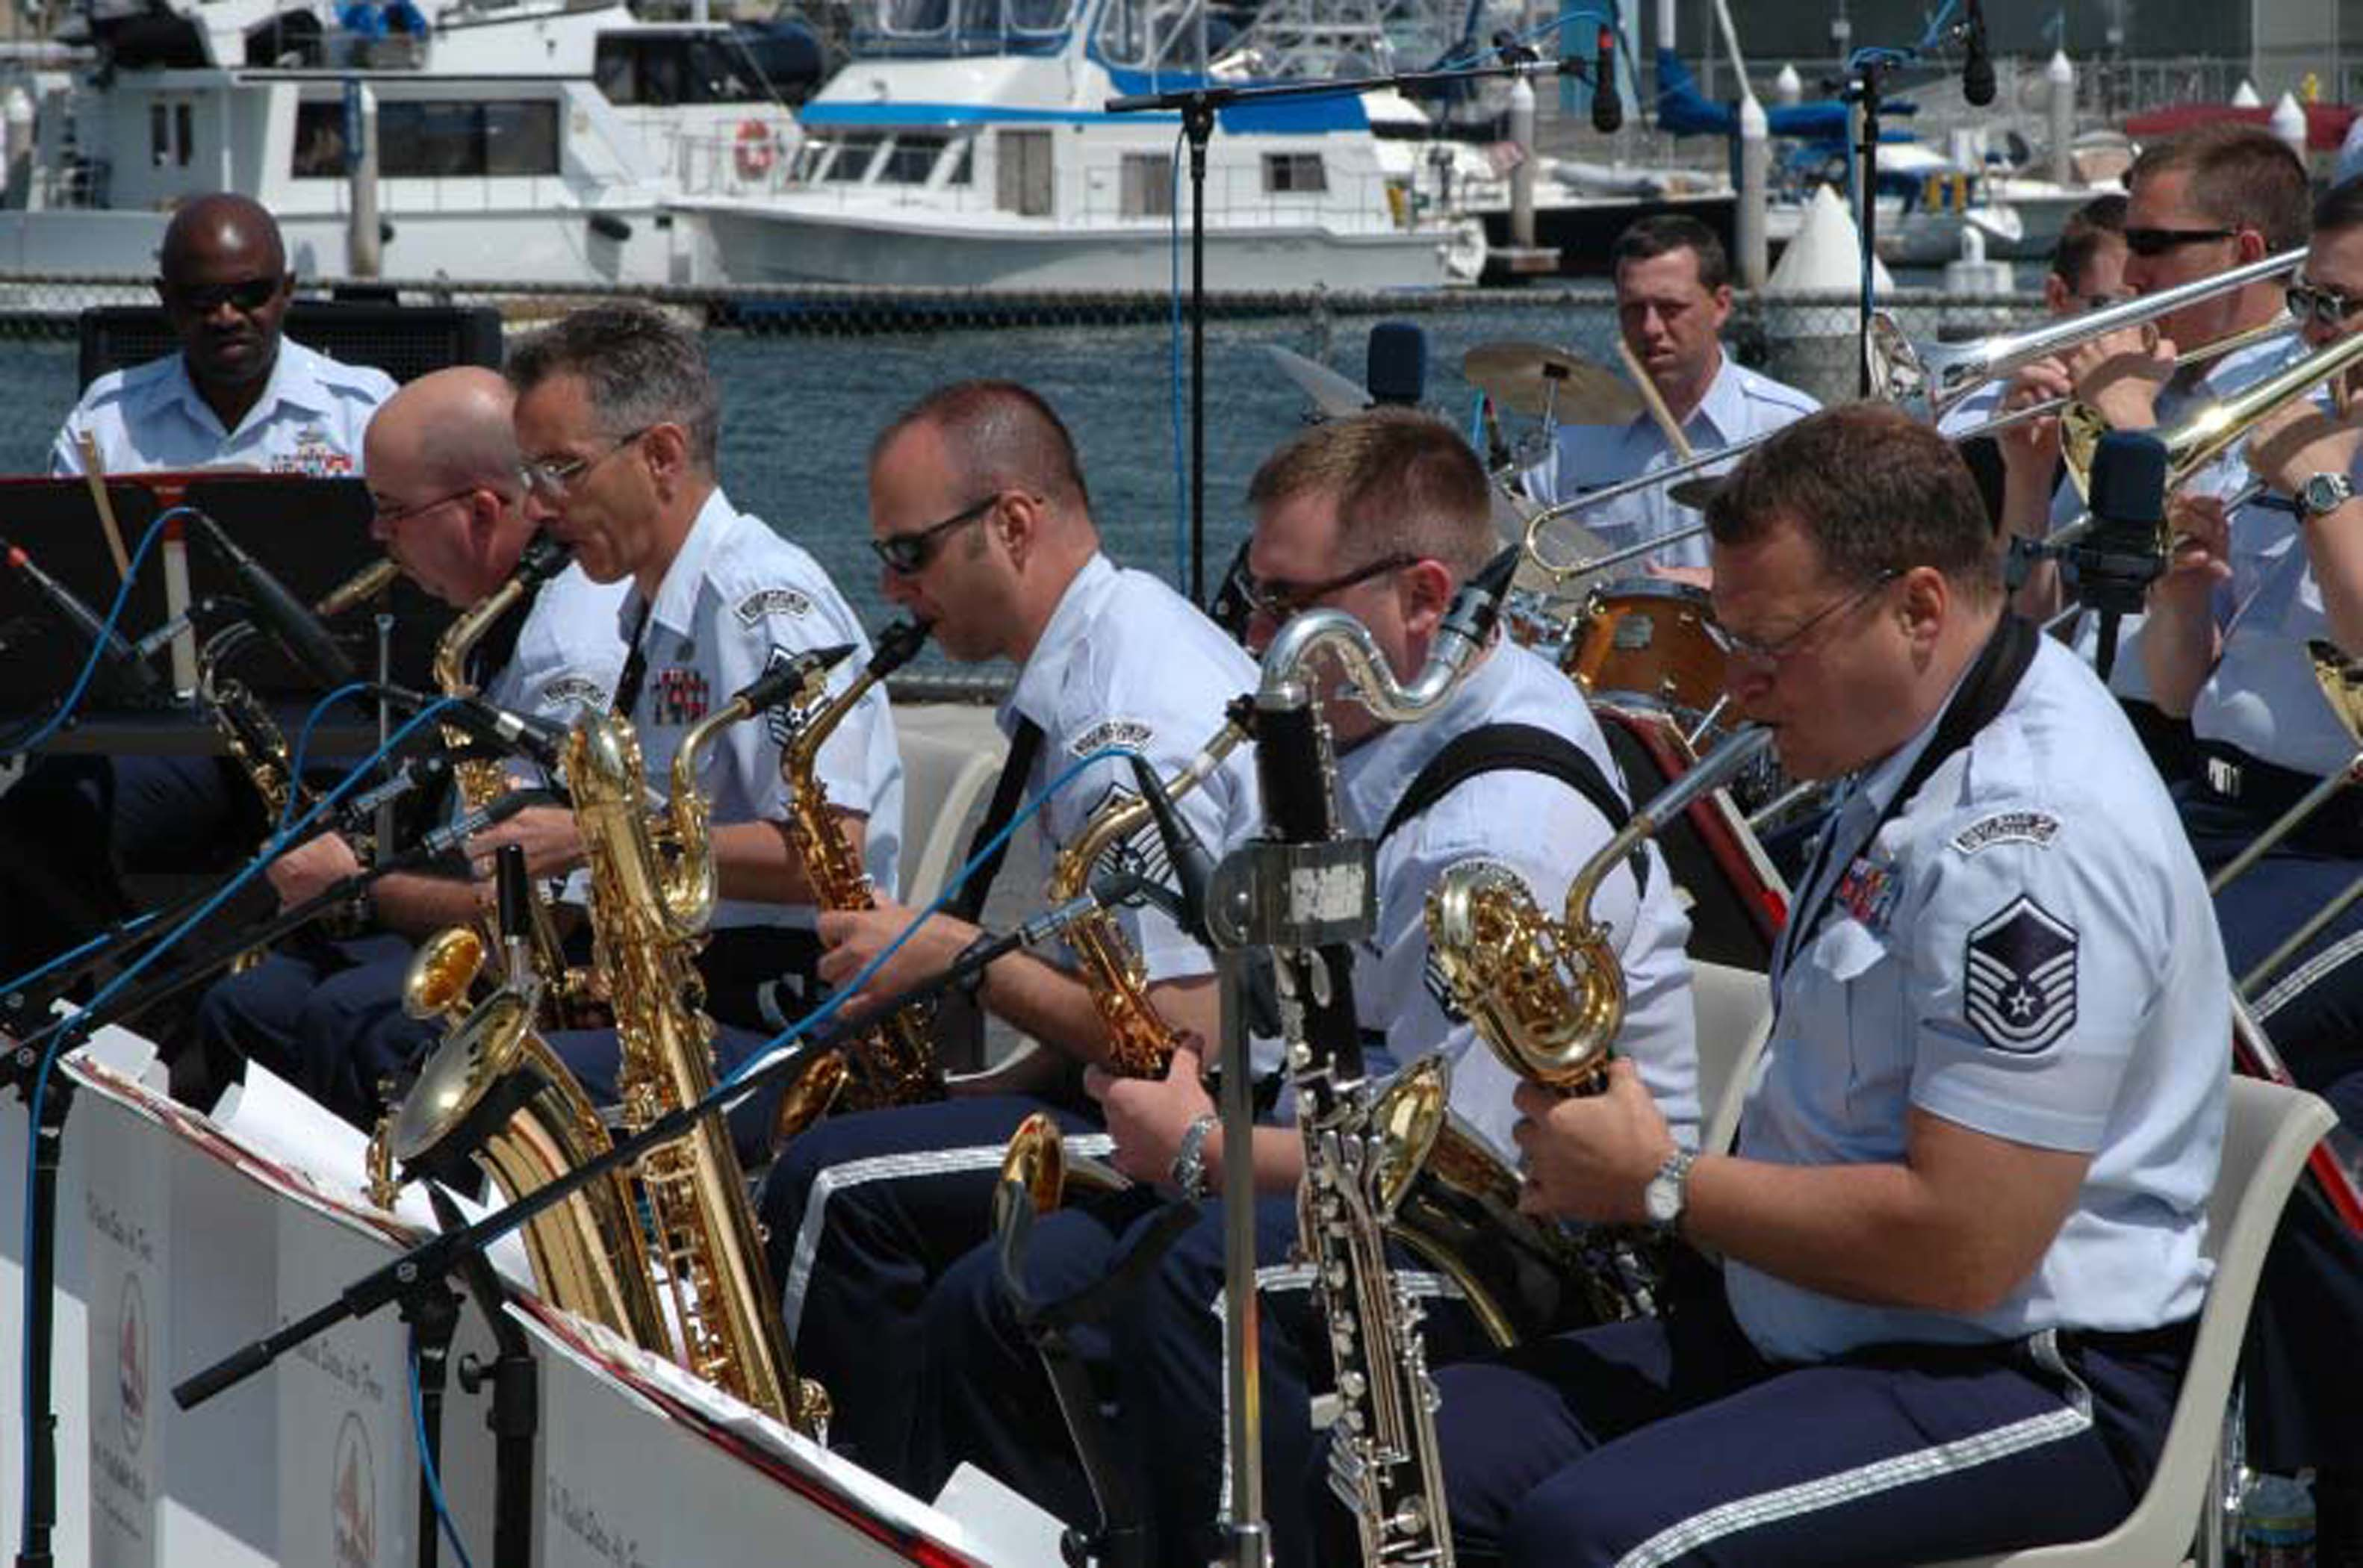 USAF Band of the Golden West